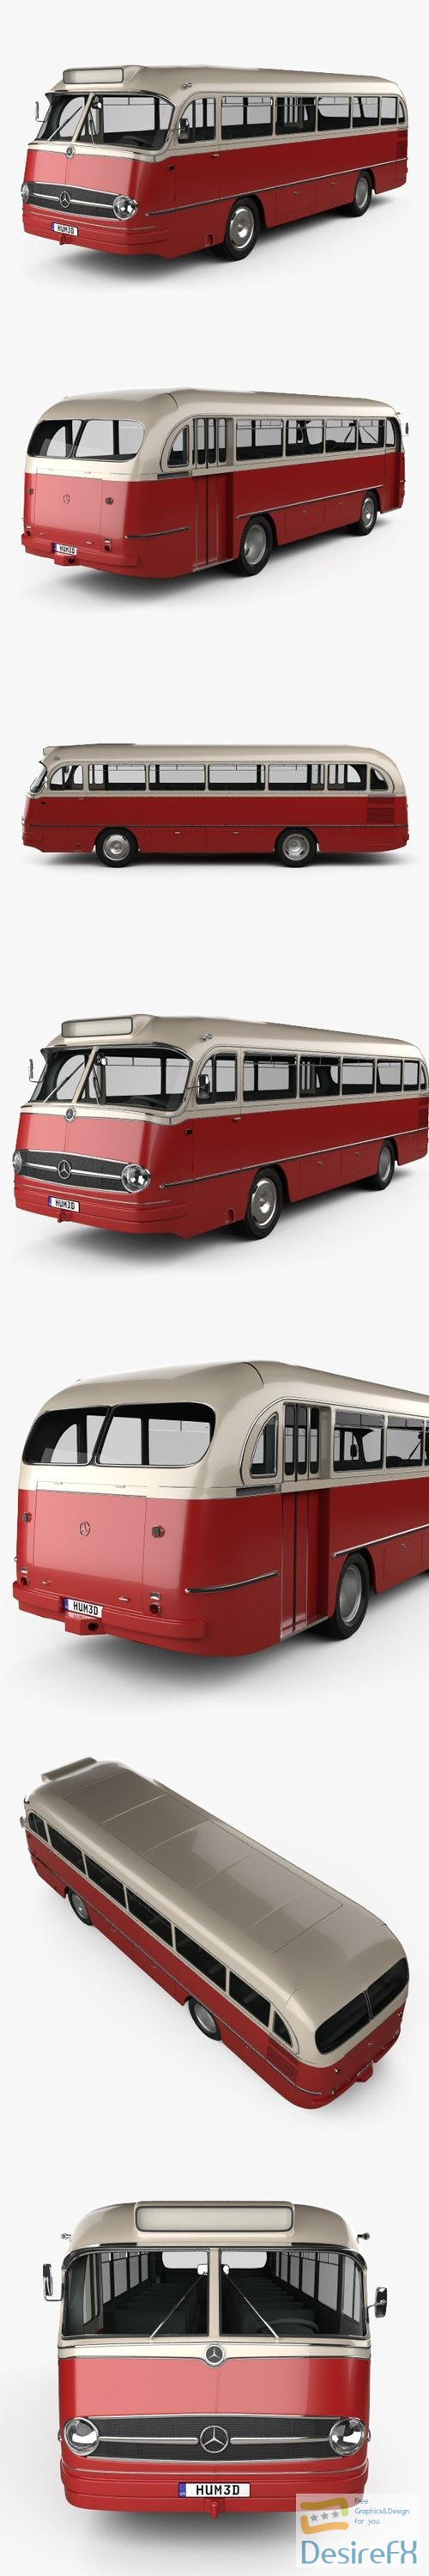 3d-models - Mercedes-Benz O 321 H Bus 1954 3D Model